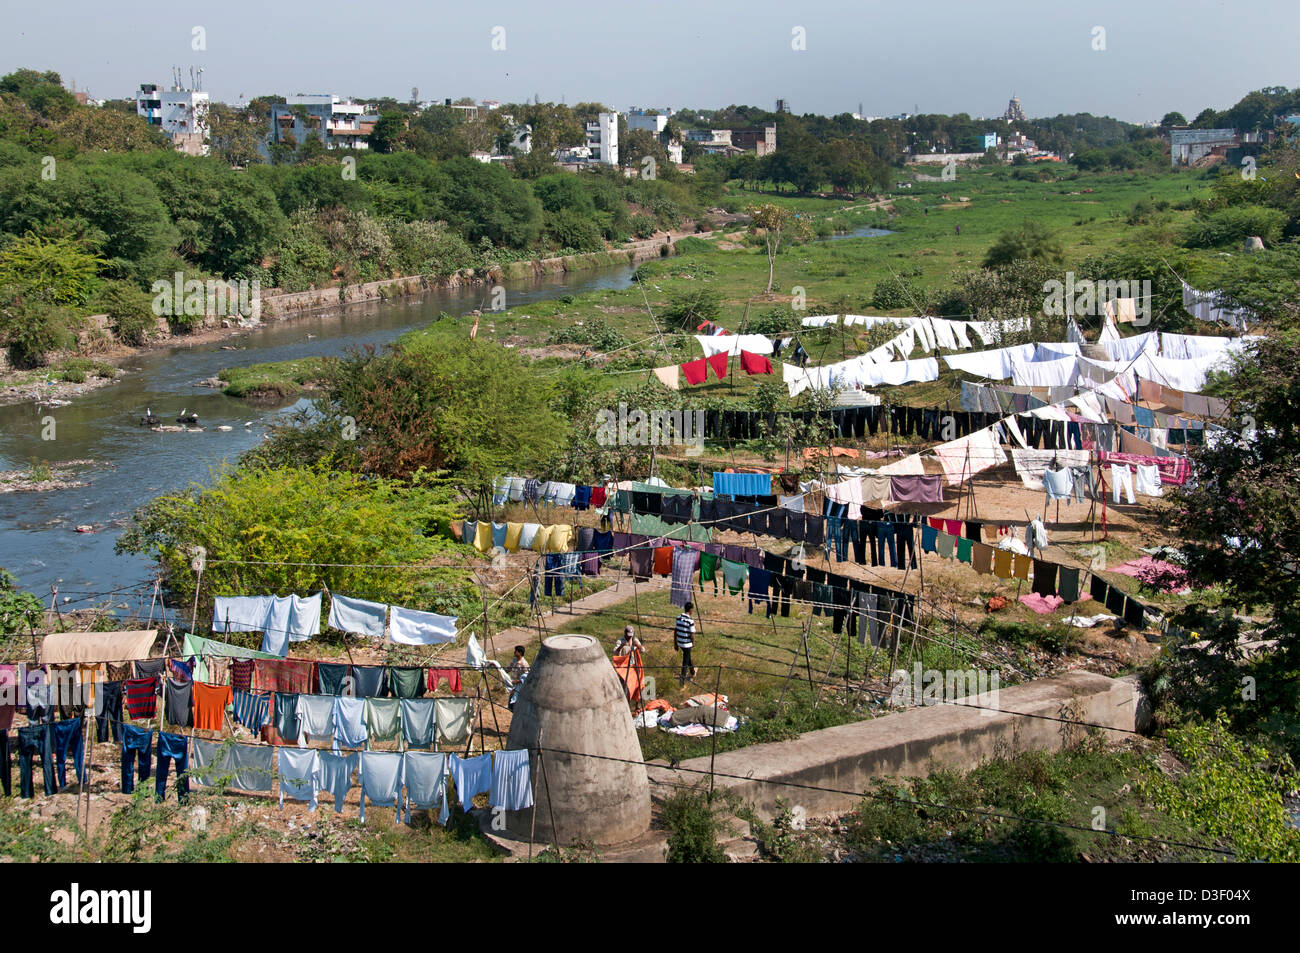 Laundry Musi River Bank  Hyderabad India Andhra Pradesh - Stock Image